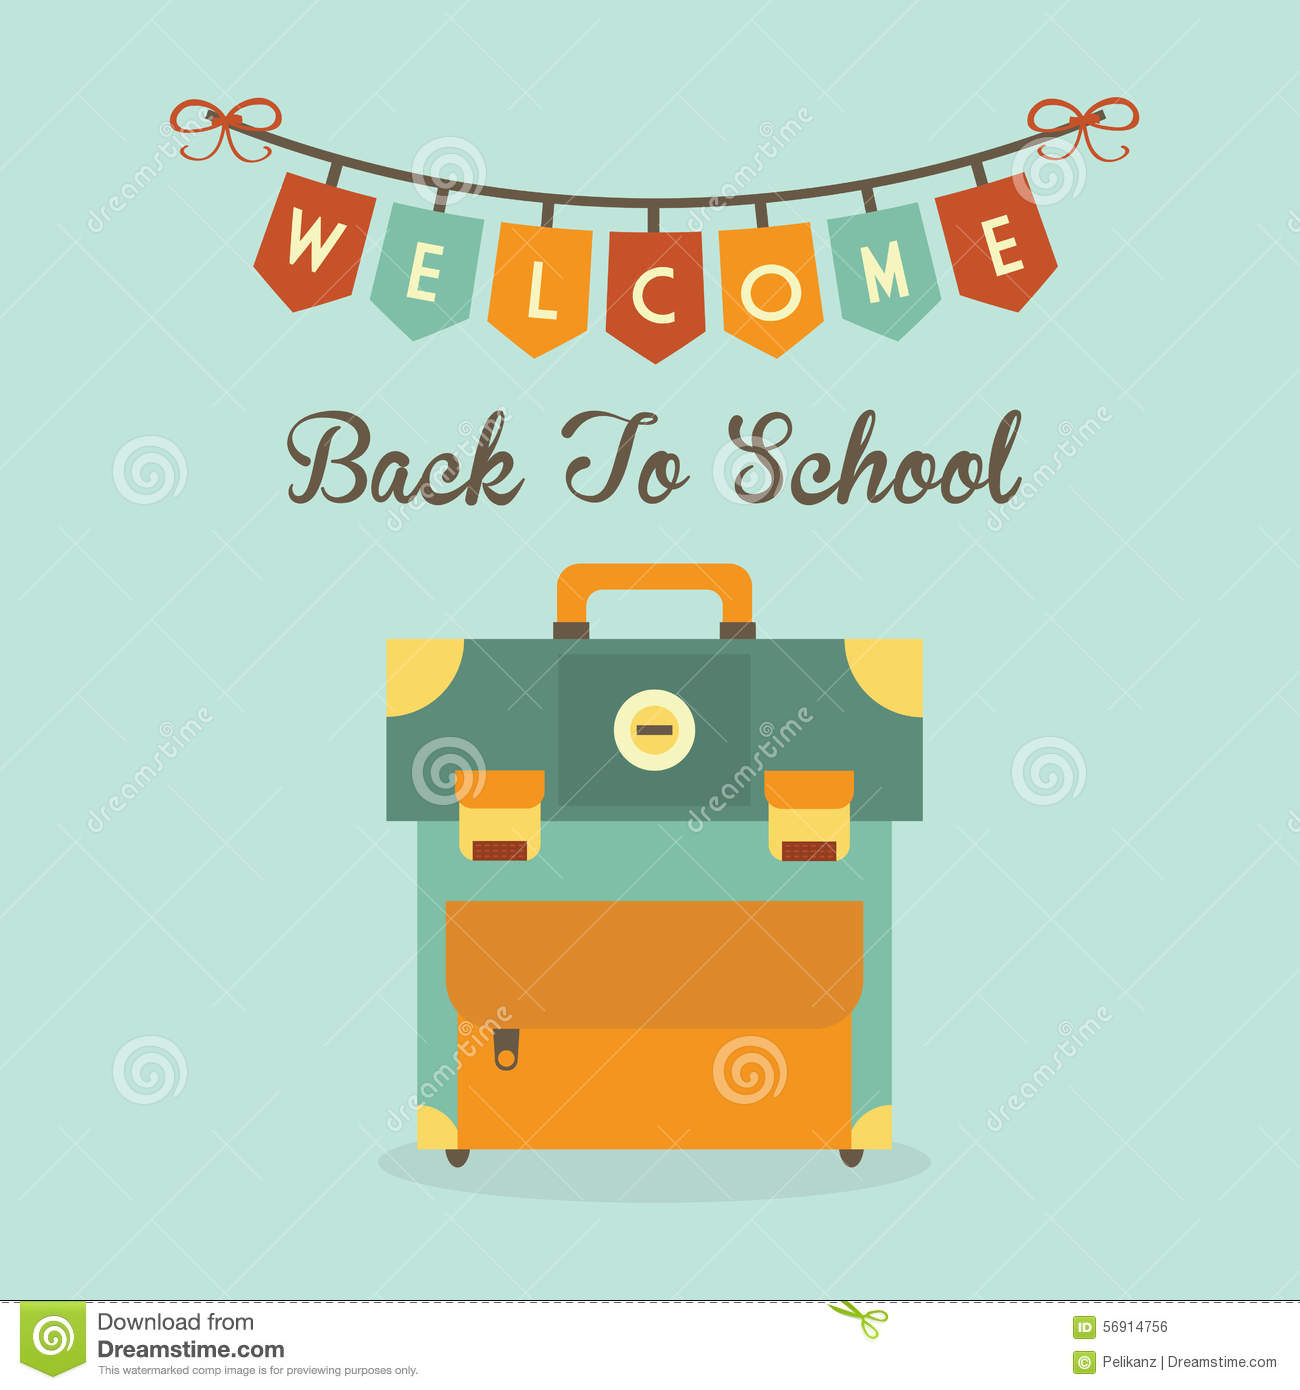 Back to school message clipart vector royalty free stock Welcome Back To School Banner Message With Retro School Bag Icon ... vector royalty free stock